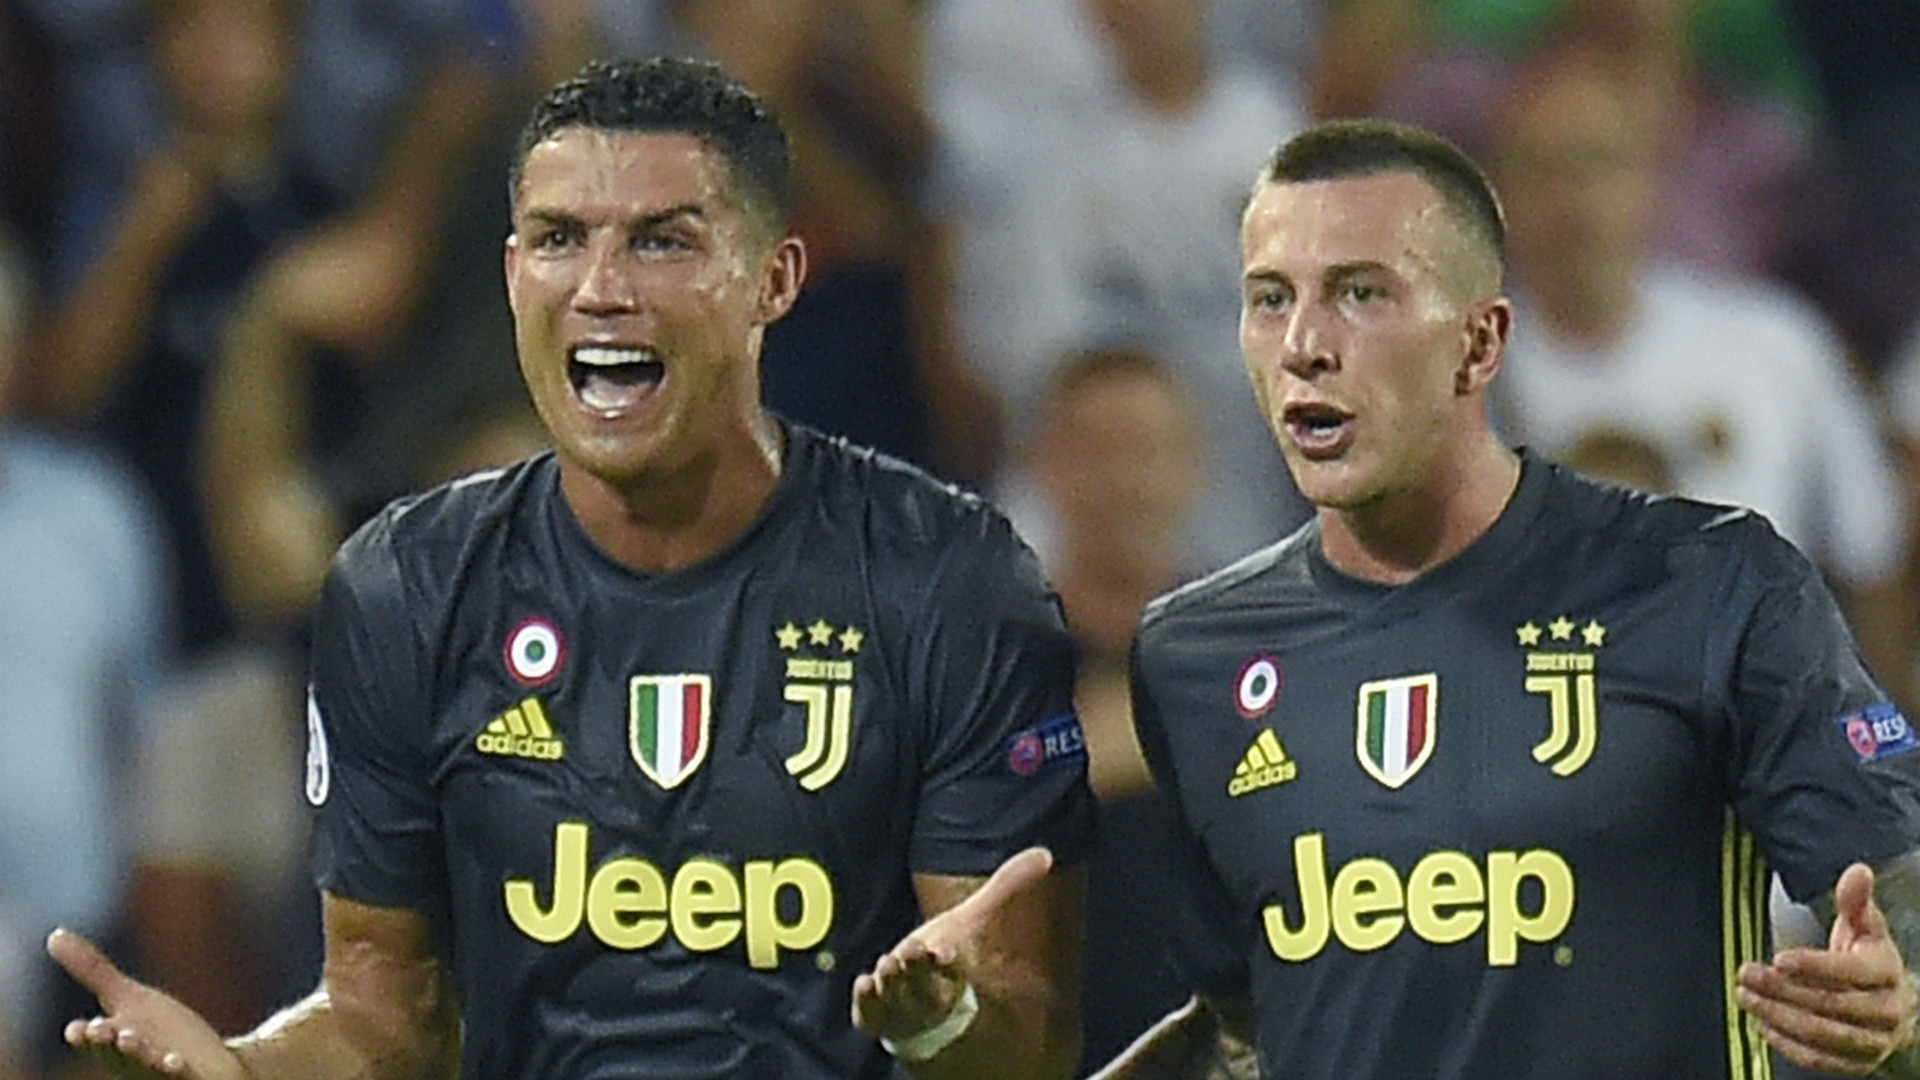 Cristiano Ronaldo feels 'persecuted' since joining Juventus